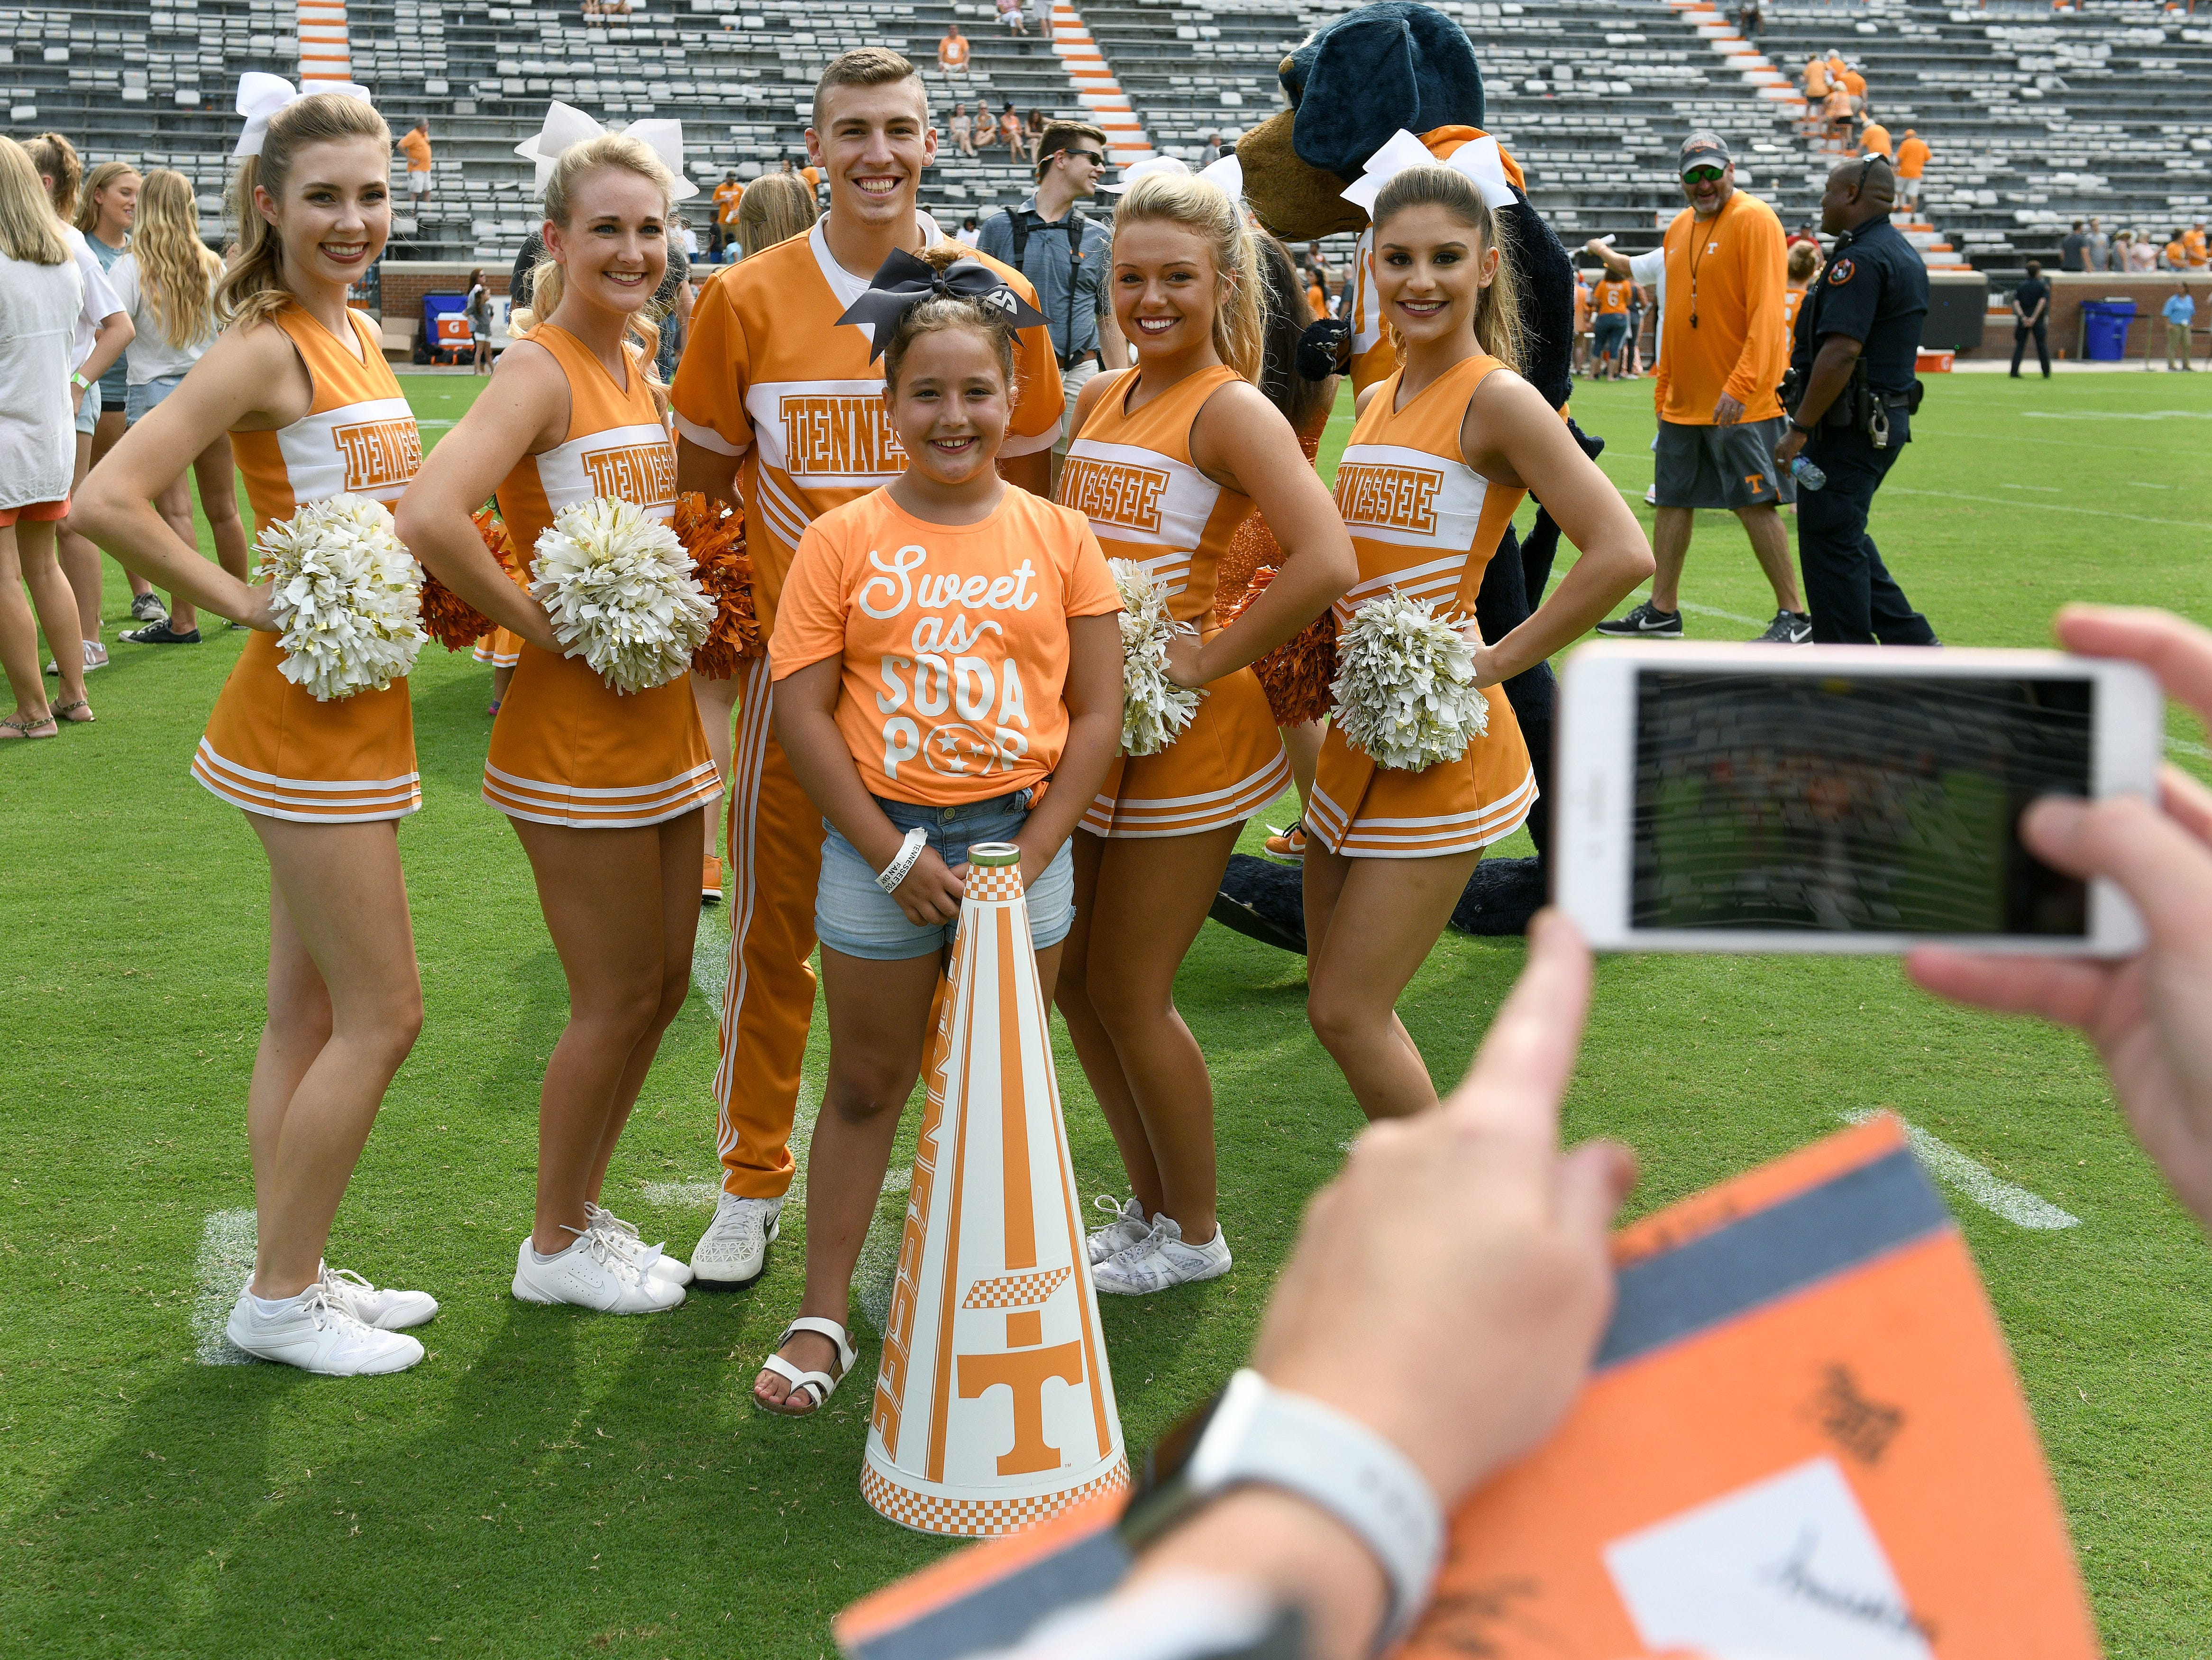 A UT fan gets her picture made with cheerleaders at the conclusion of practice as part of Fan Day in Neyland Stadium Sunday, August 5, 2018.